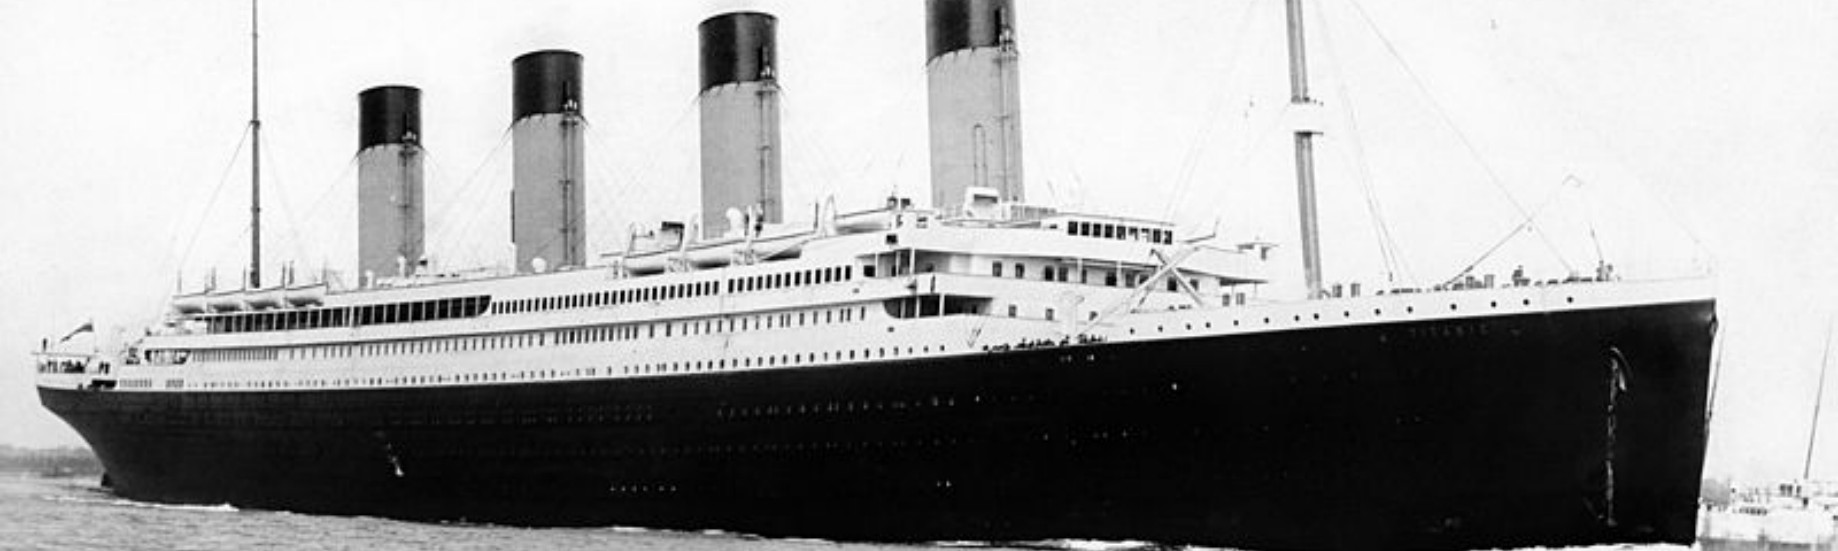 The Titanic Was on Fire for Days Before It Sank - Featured